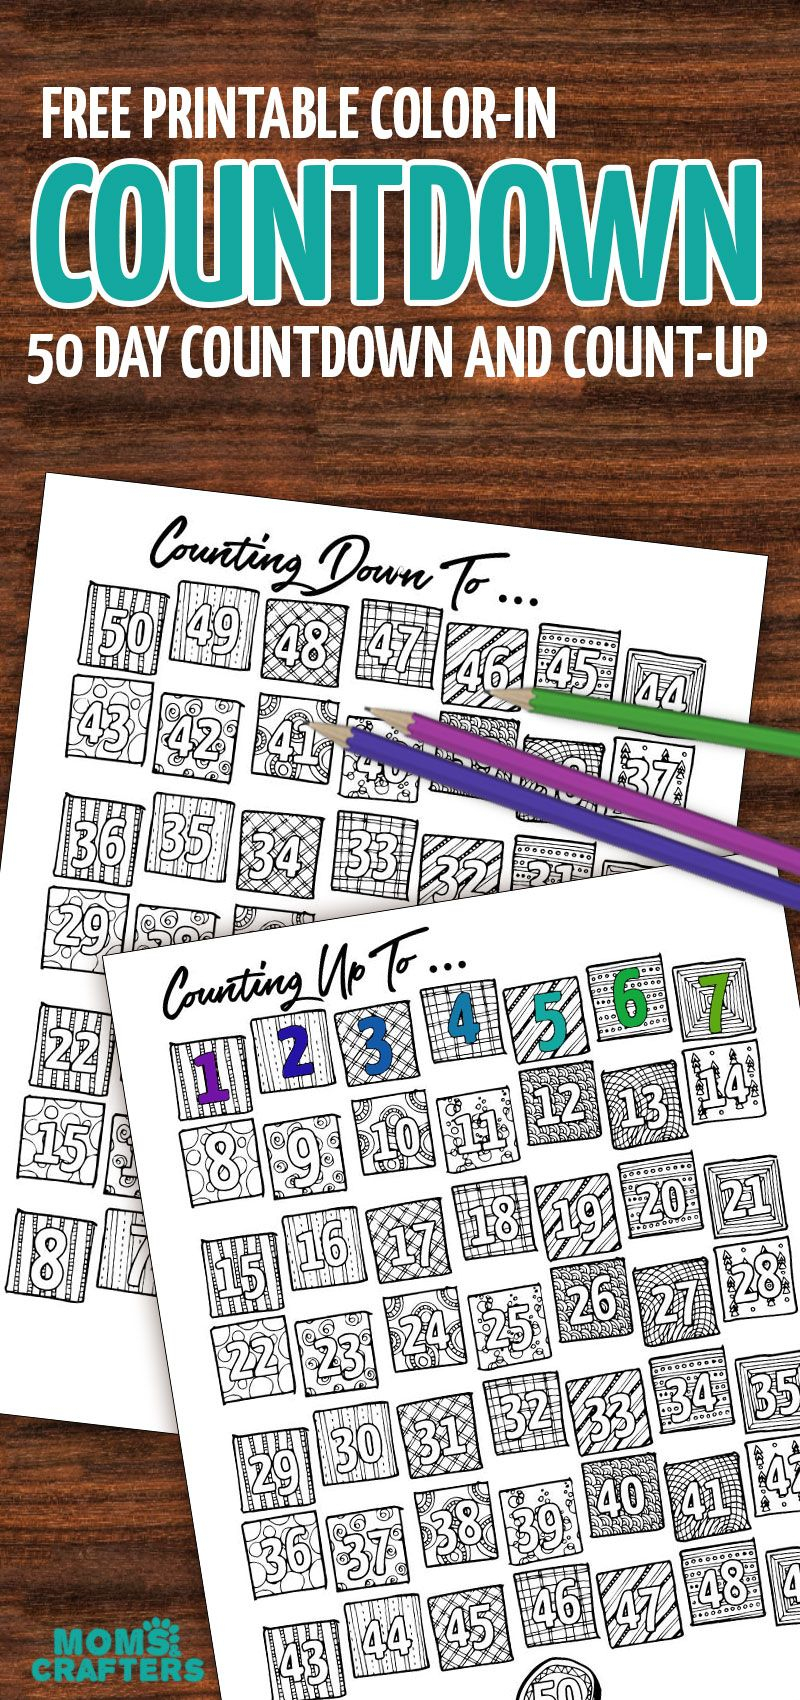 Grab This Fun Color-In Countdown And Progress Tracker | Moms